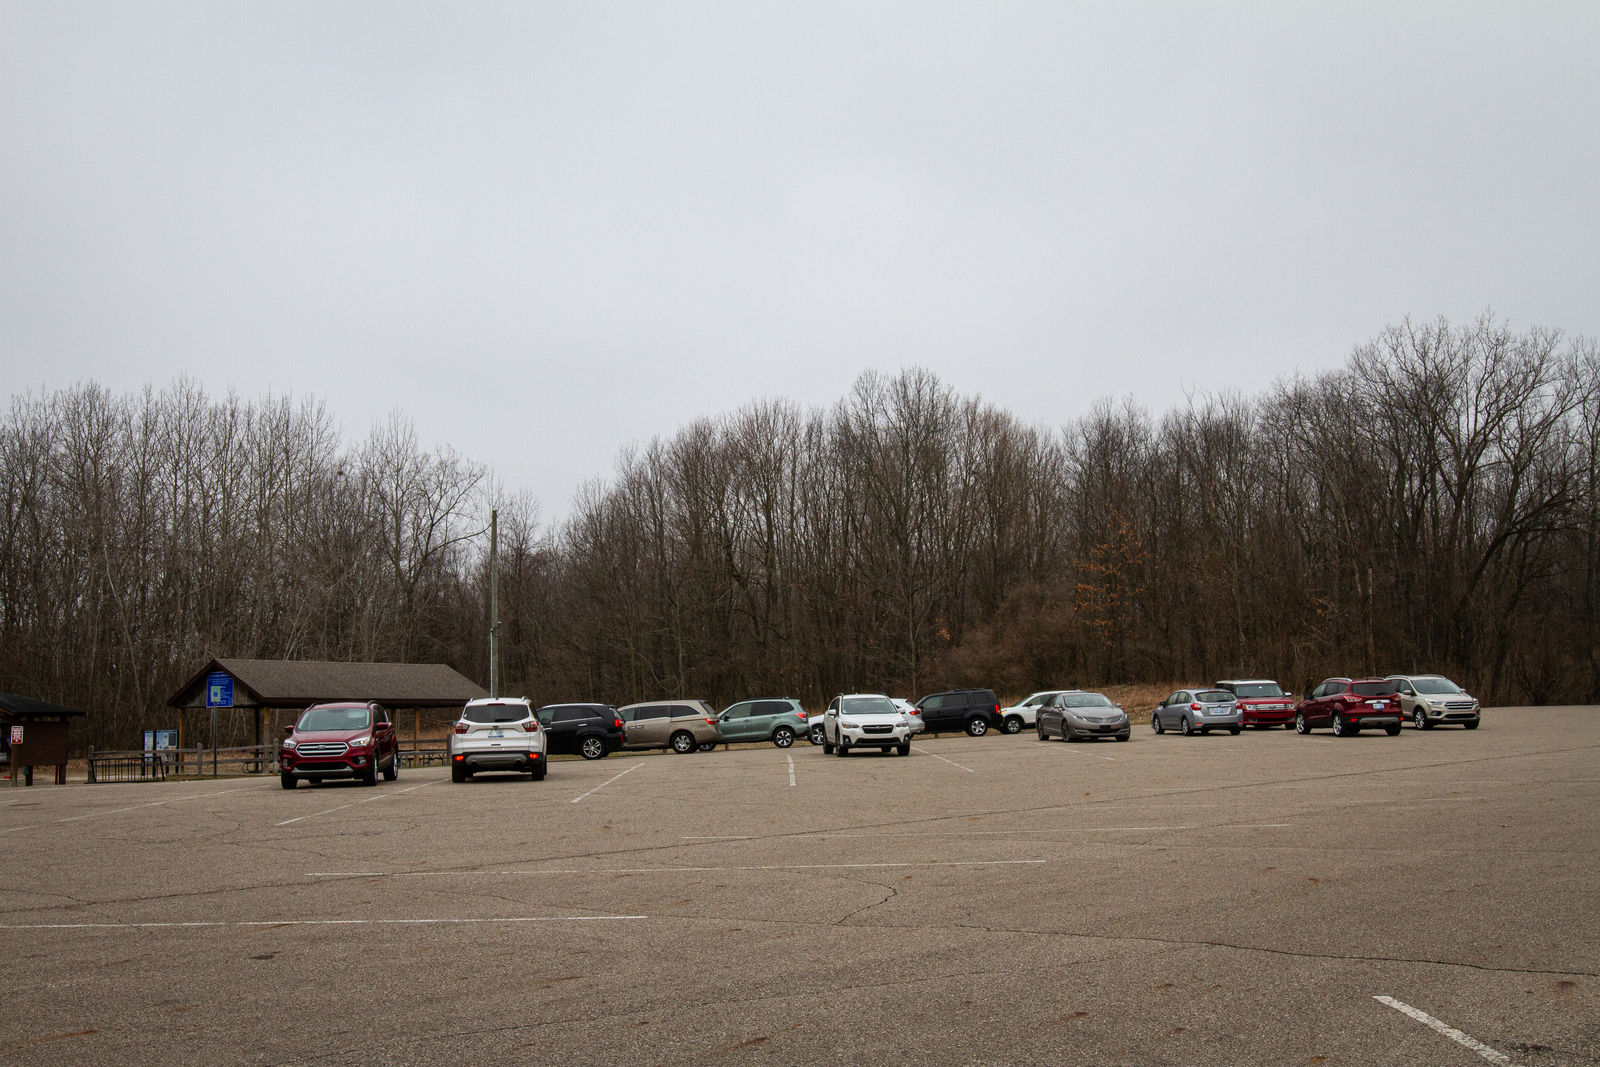 Cars line the parking lot of Kal-Haven State Park on Wednesday, March 25.{ }(WWMT/Sarah White)